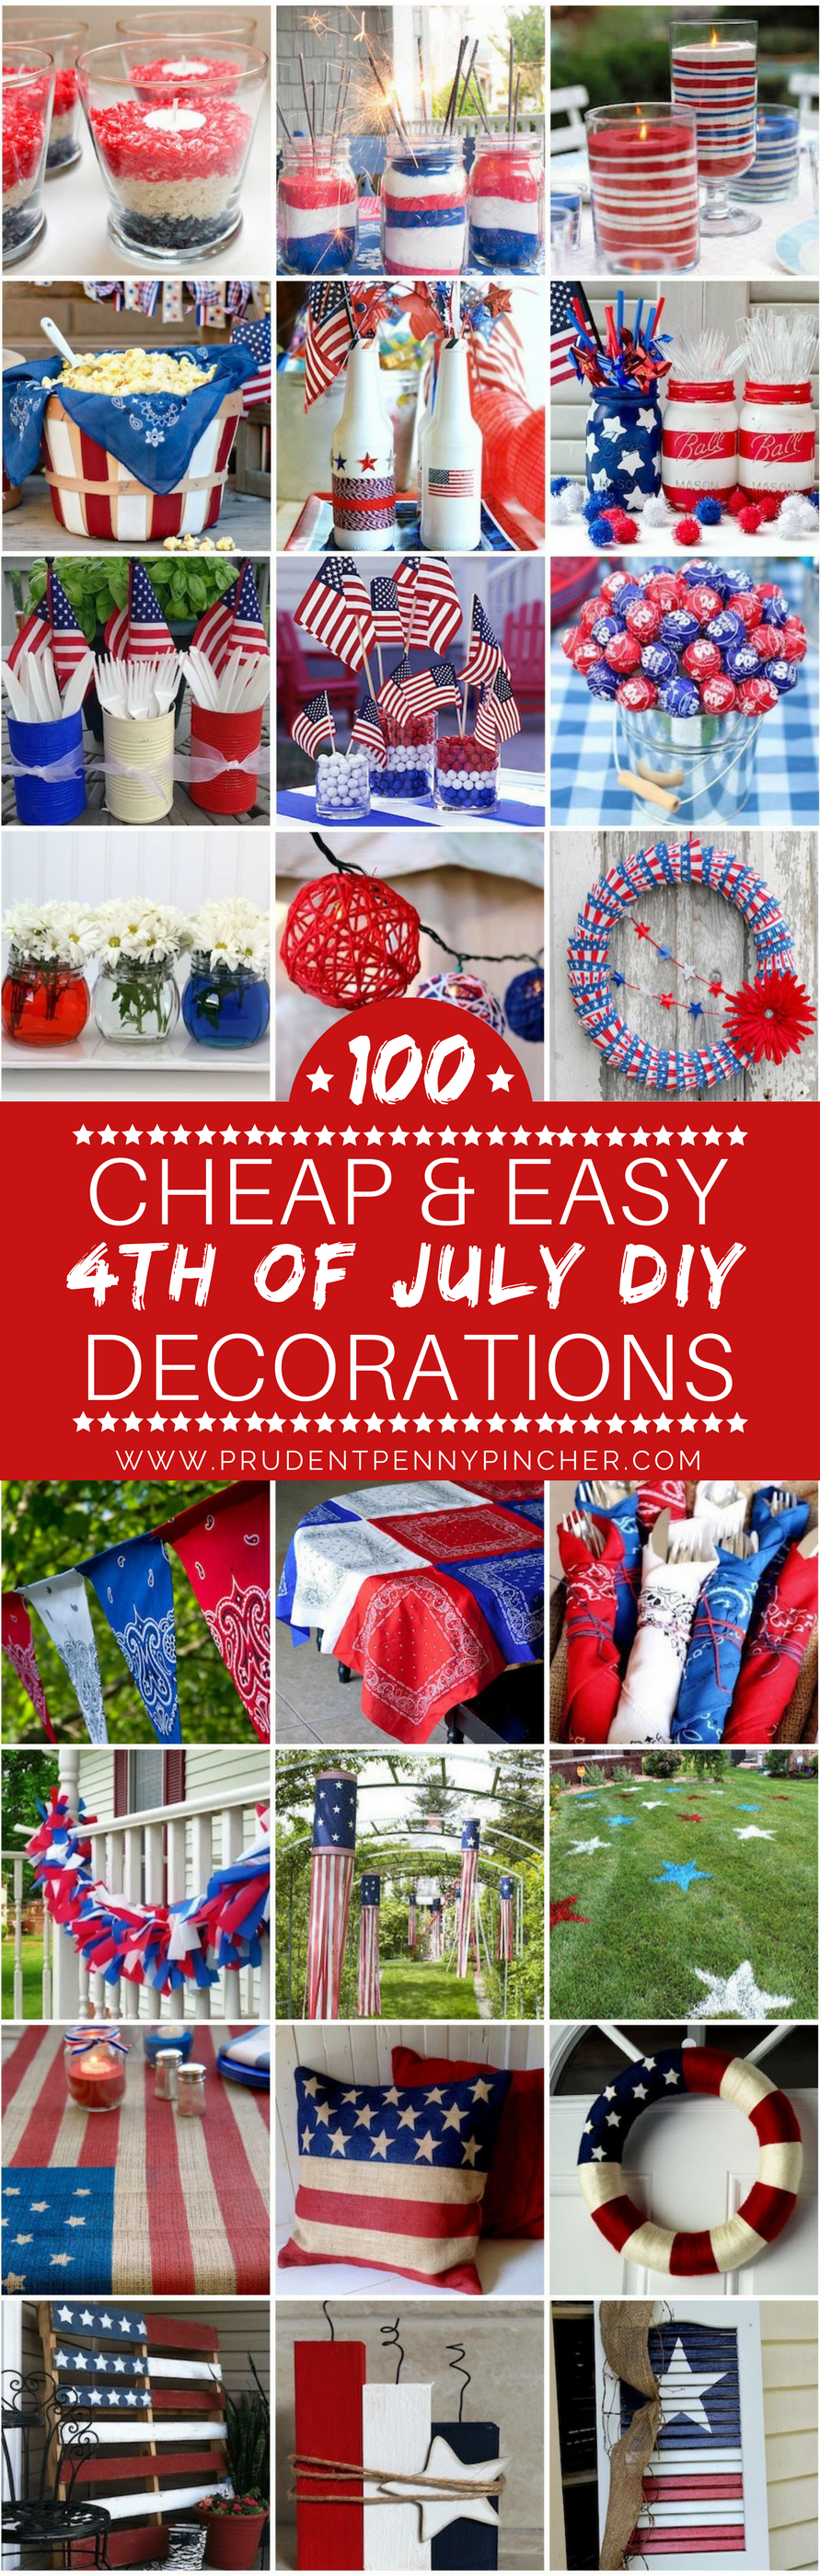 Check Out These Creative 4th Of July Decoration Ideas That Are Easy To Make  And Easy On The Wallet. These Patriotic DIY Projects Are Sure To Impress  Your ...